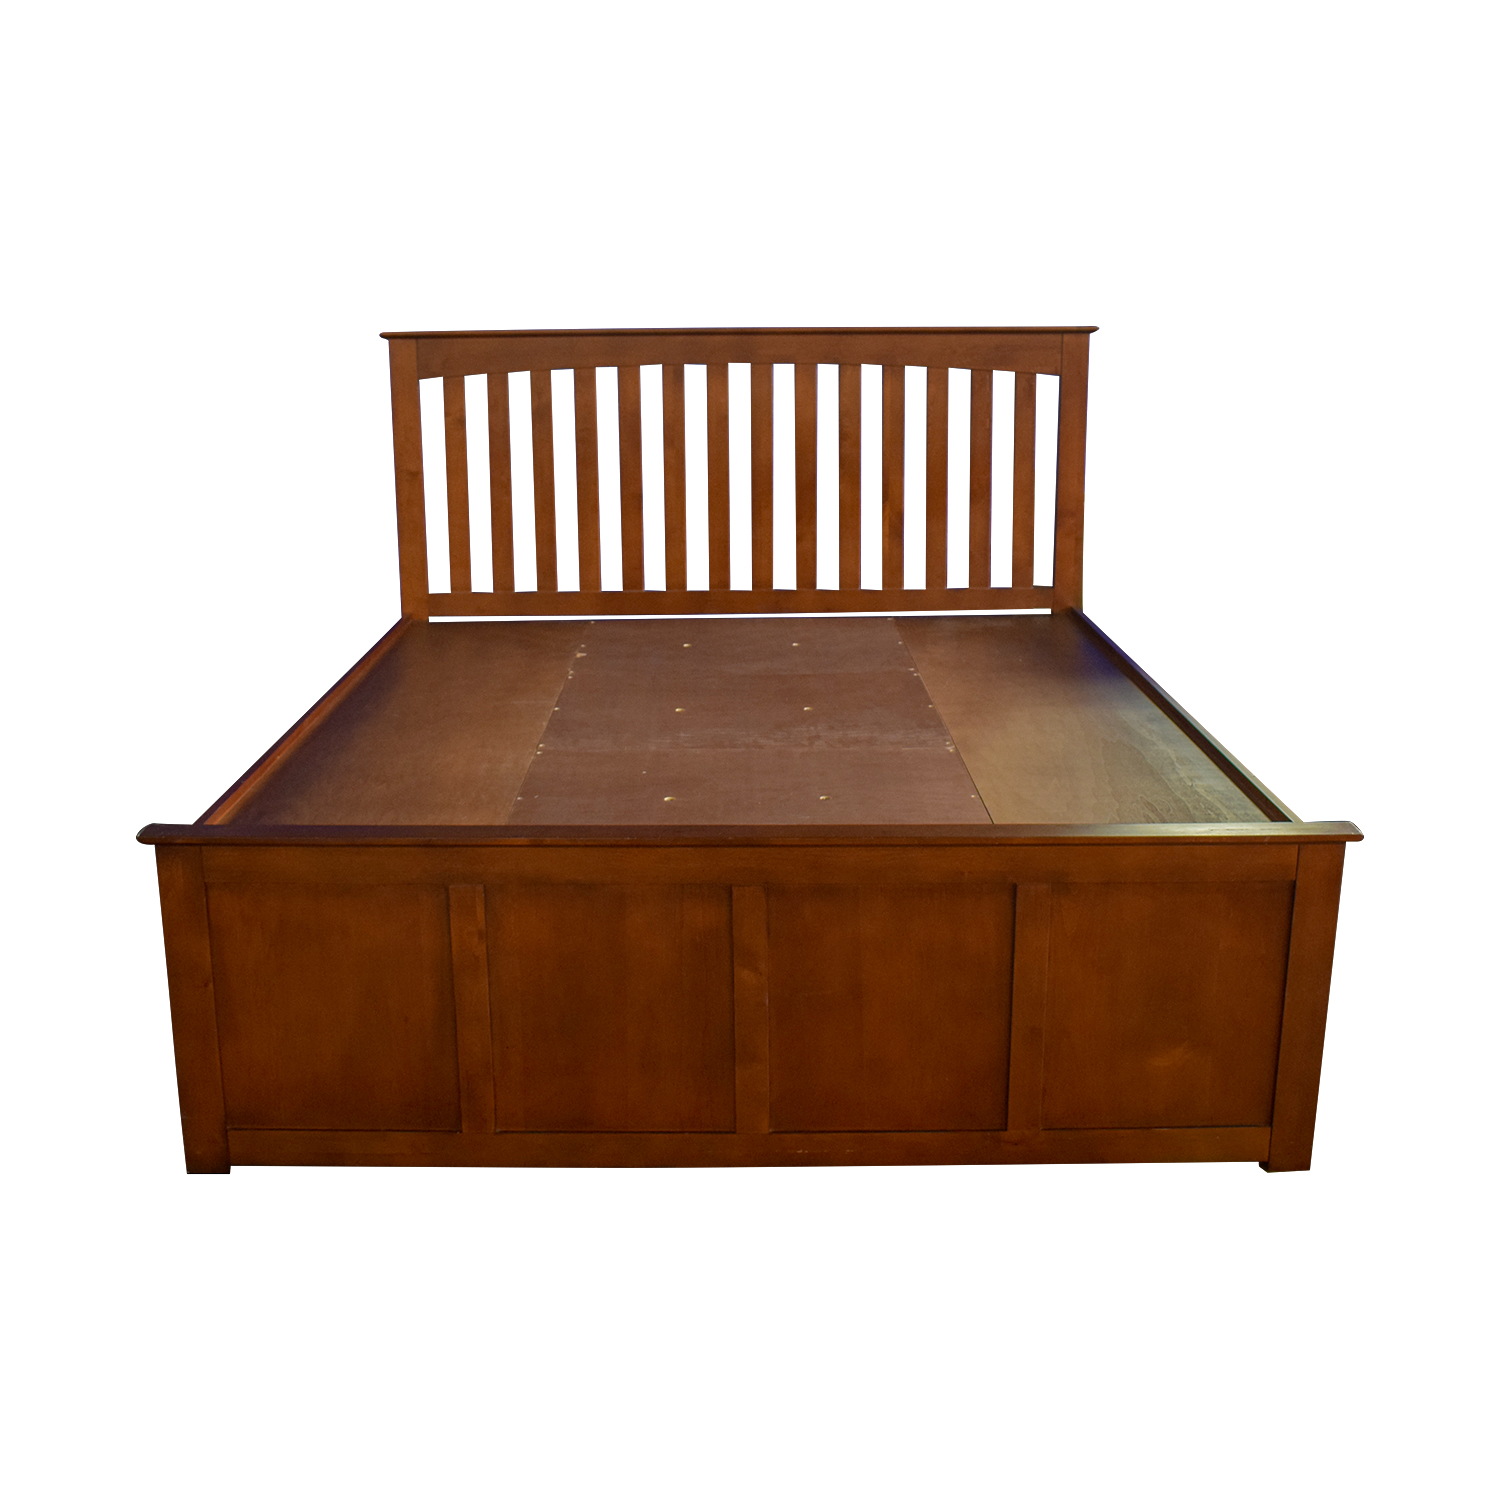 buy Raymour & Flanigan King Platform Bed Frame with Storage Drawers Raymour & Flanigan Beds